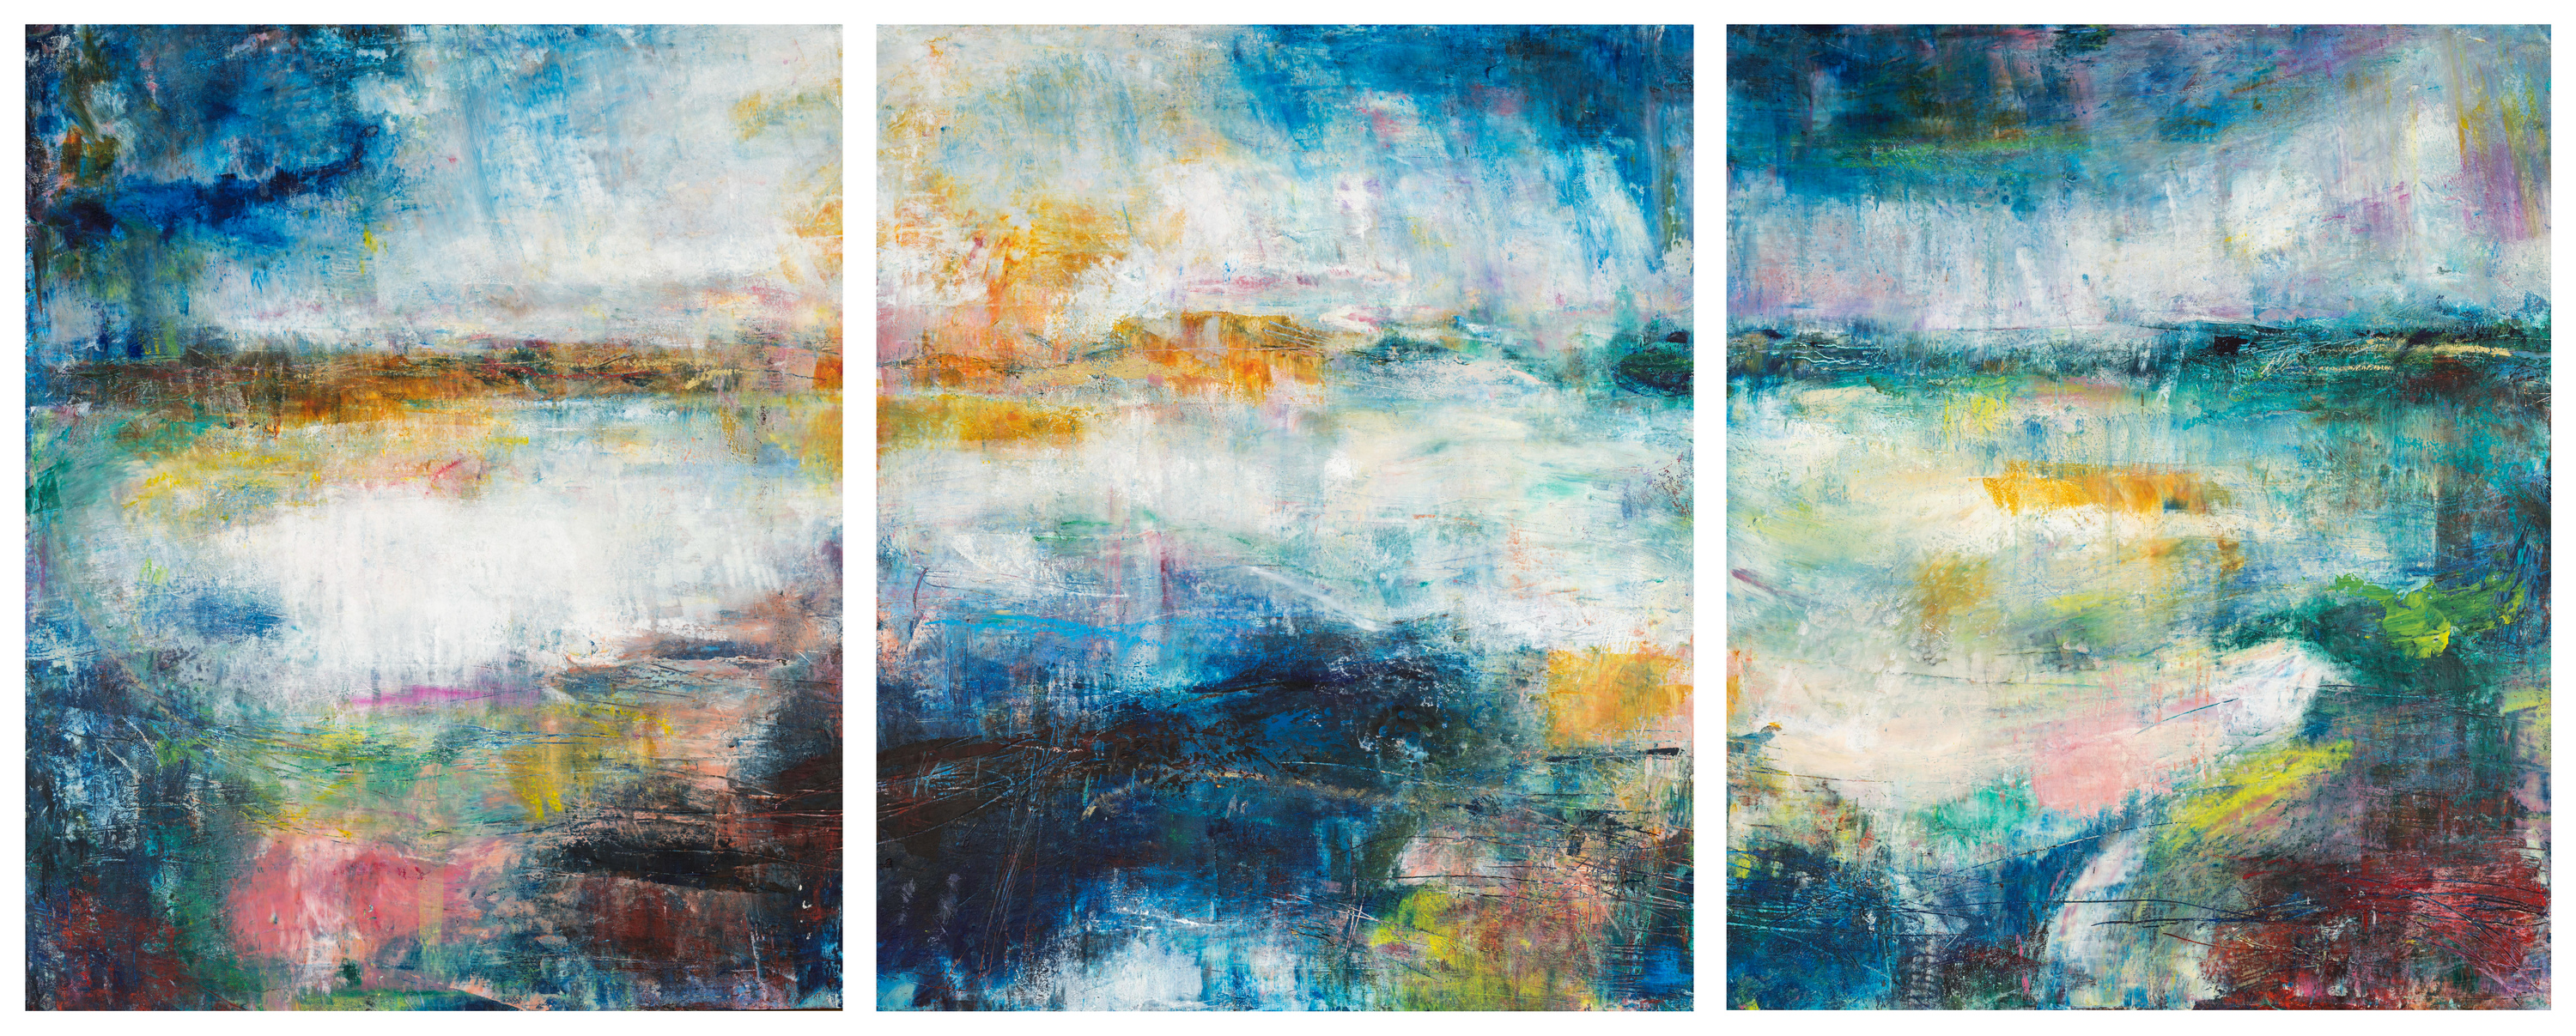 Containers triptych eadaoin glynn 2019 oil oil bar pigment cold wax on cradled panel 60x150cm hires nuivzz